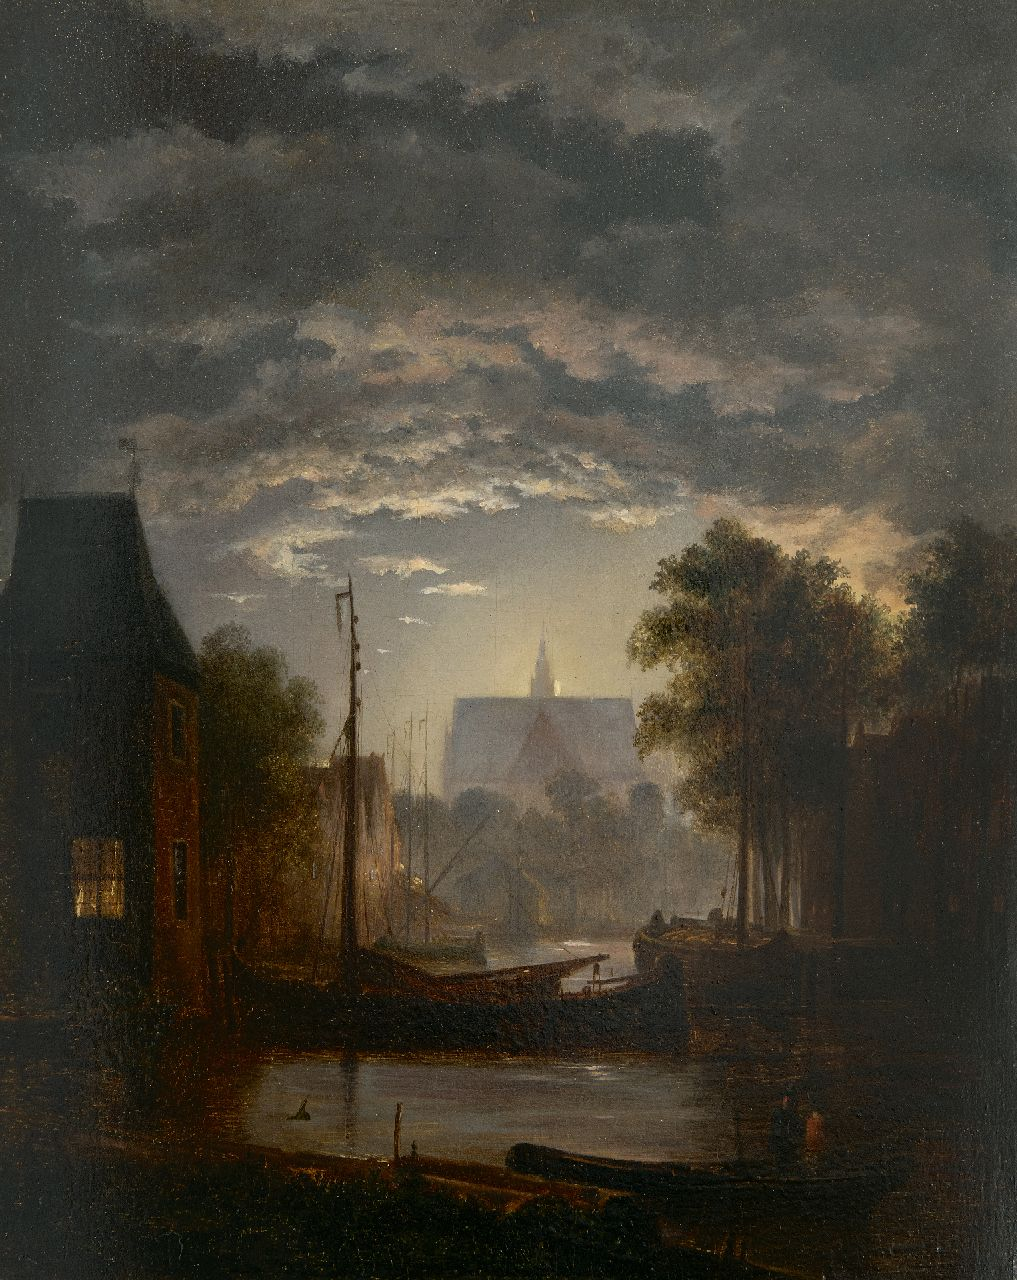 Abels J.Th.  | 'Jacobus' Theodorus Abels | Paintings offered for sale | A moonlit town harbour, oil on panel 29.7 x 23.6 cm